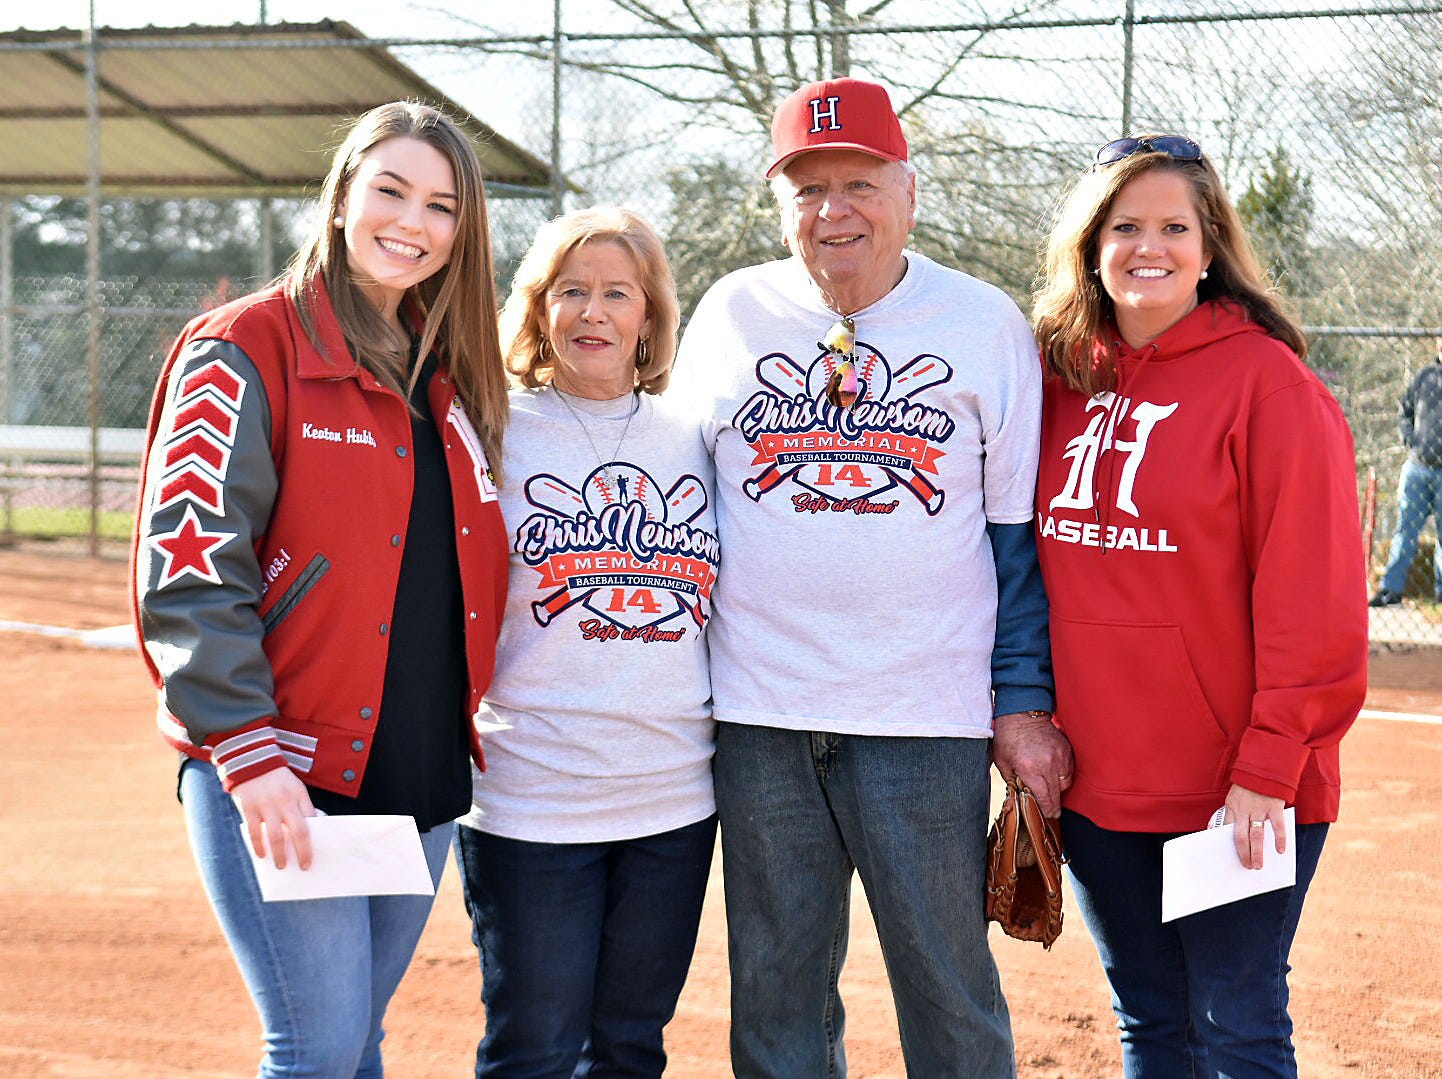 Newsom scholarship winners were named at the opening ceremony of the 2019 Chris Newsom Memorial Tournament at Halls Park. Pictured are scholar Keaton Hubbs, Mary and Hugh Newsom and Kimberly Schoaf, accepting the award on behalf of her son, Will.